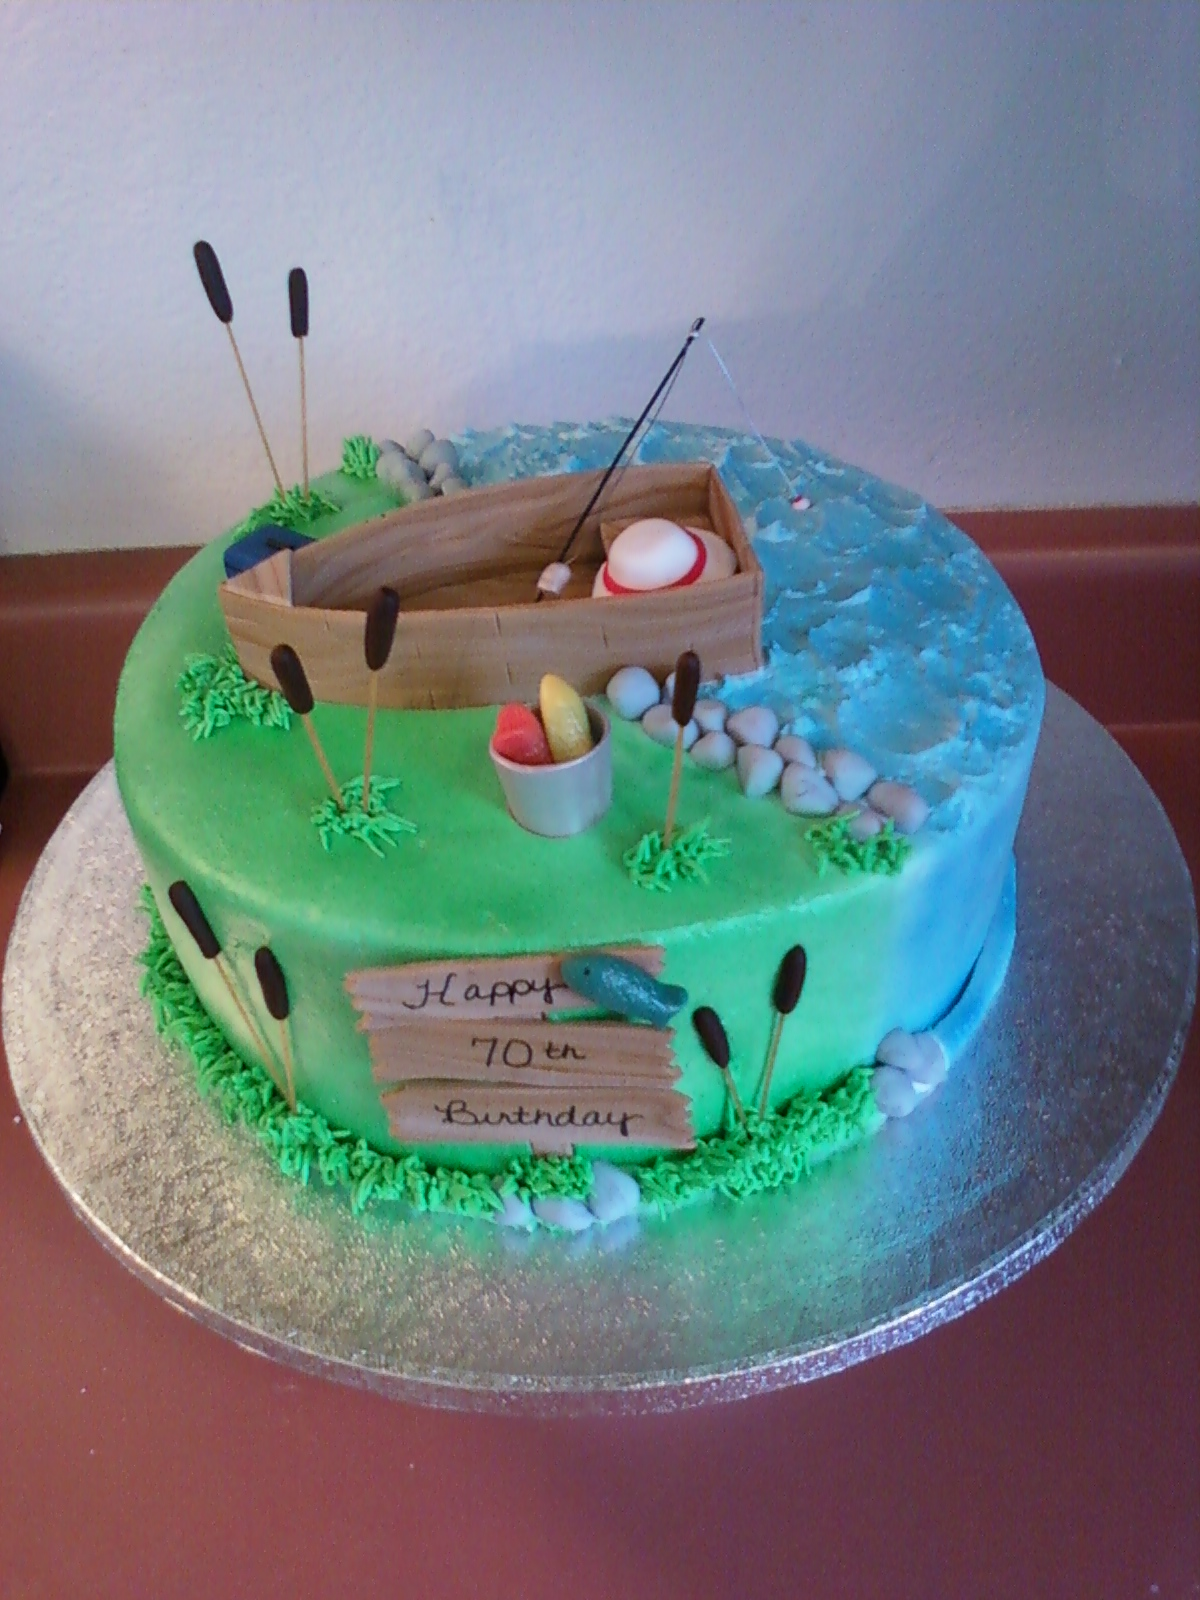 10 decorating cakes with fish pictures photo fishing for Fishing cake decorations